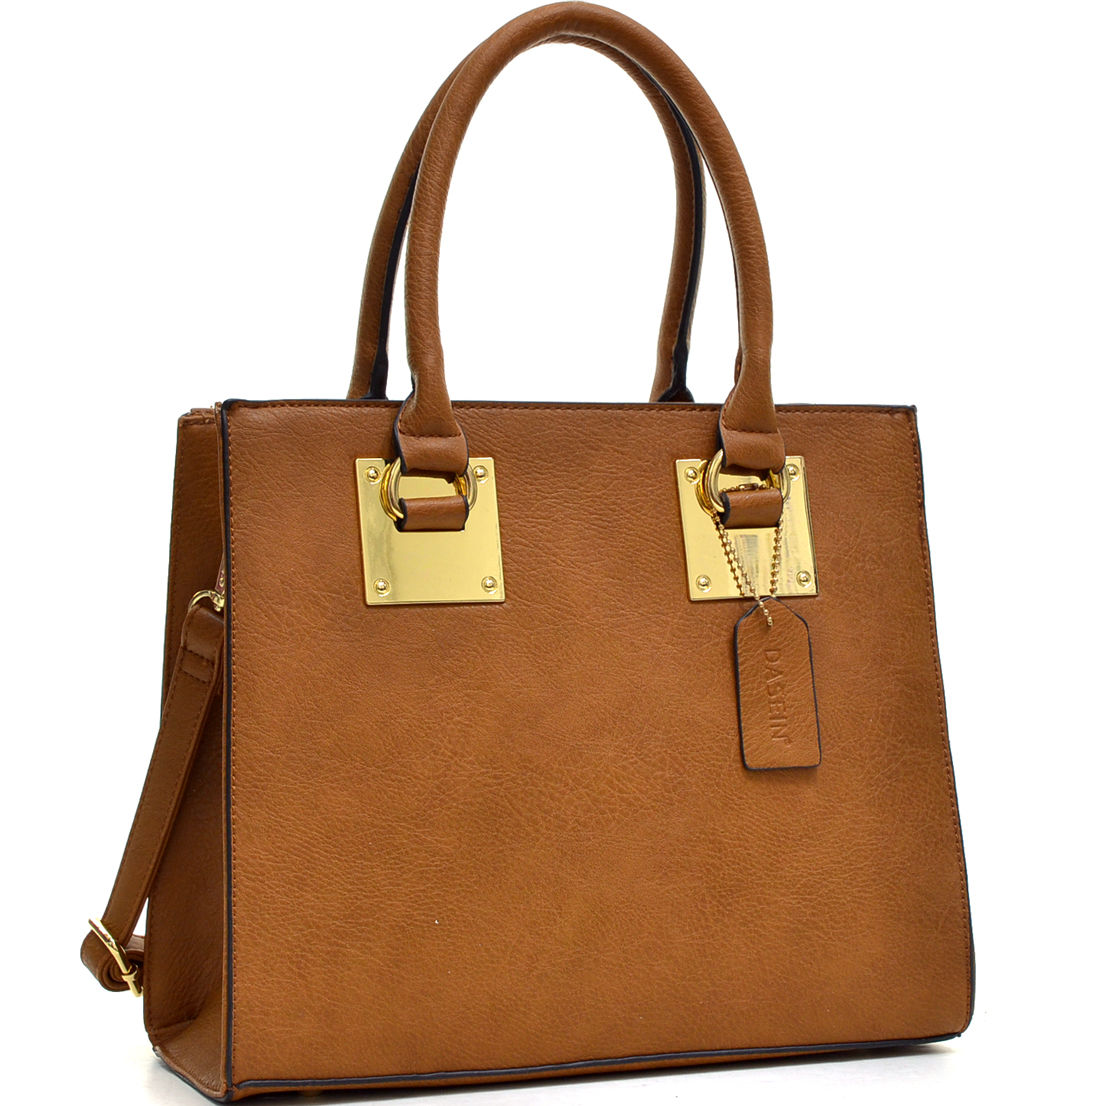 Structured Faux Leather Satchel with Shoulder Strap